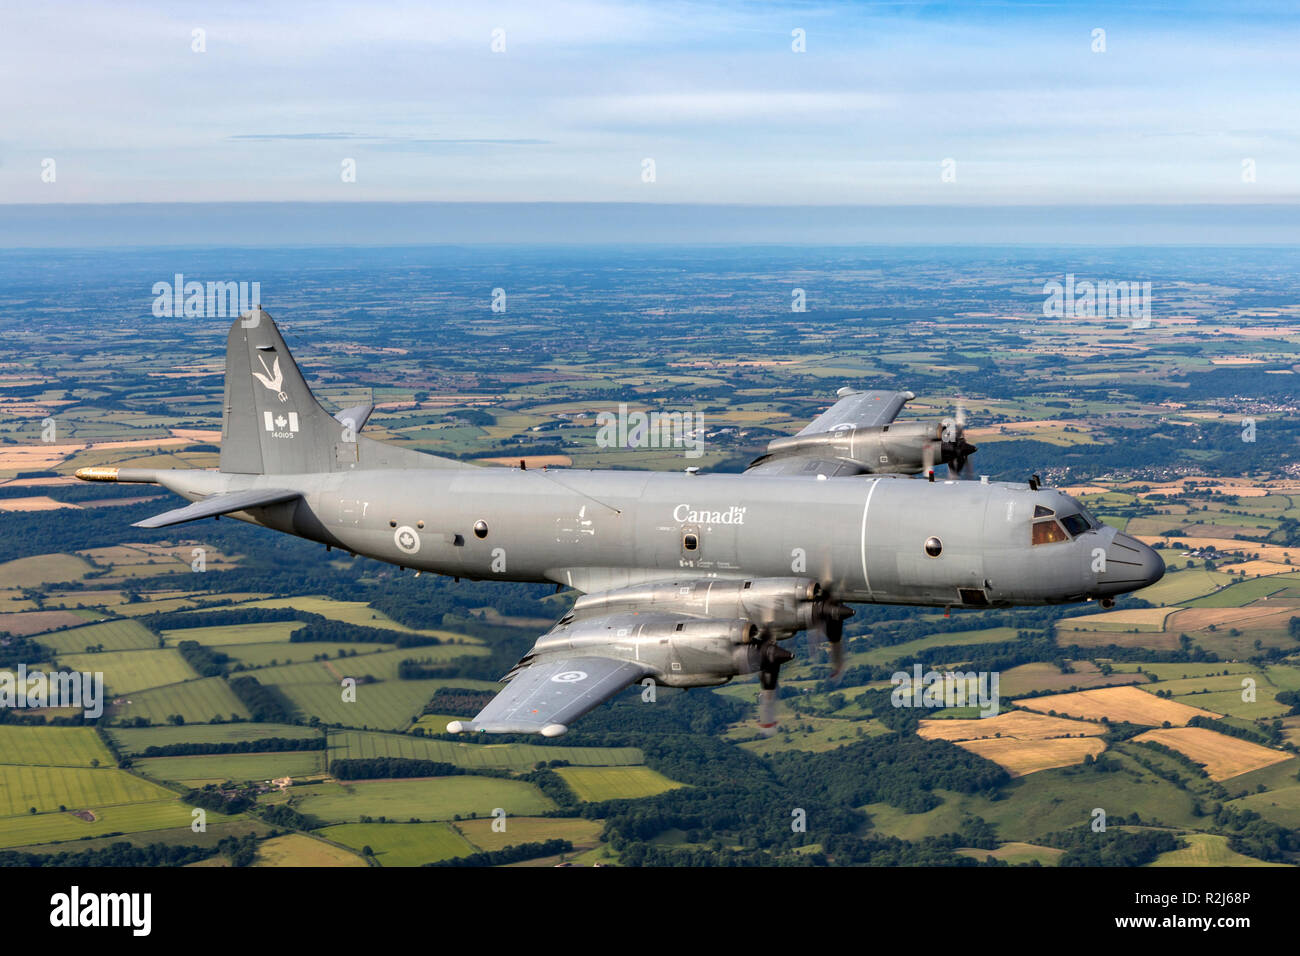 The Lockheed CP-140 Aurora is a maritime patrol aircraft operated by the Royal Canadian Air Force. The aircraft is based on the Lockheed P-3 Orion air - Stock Image